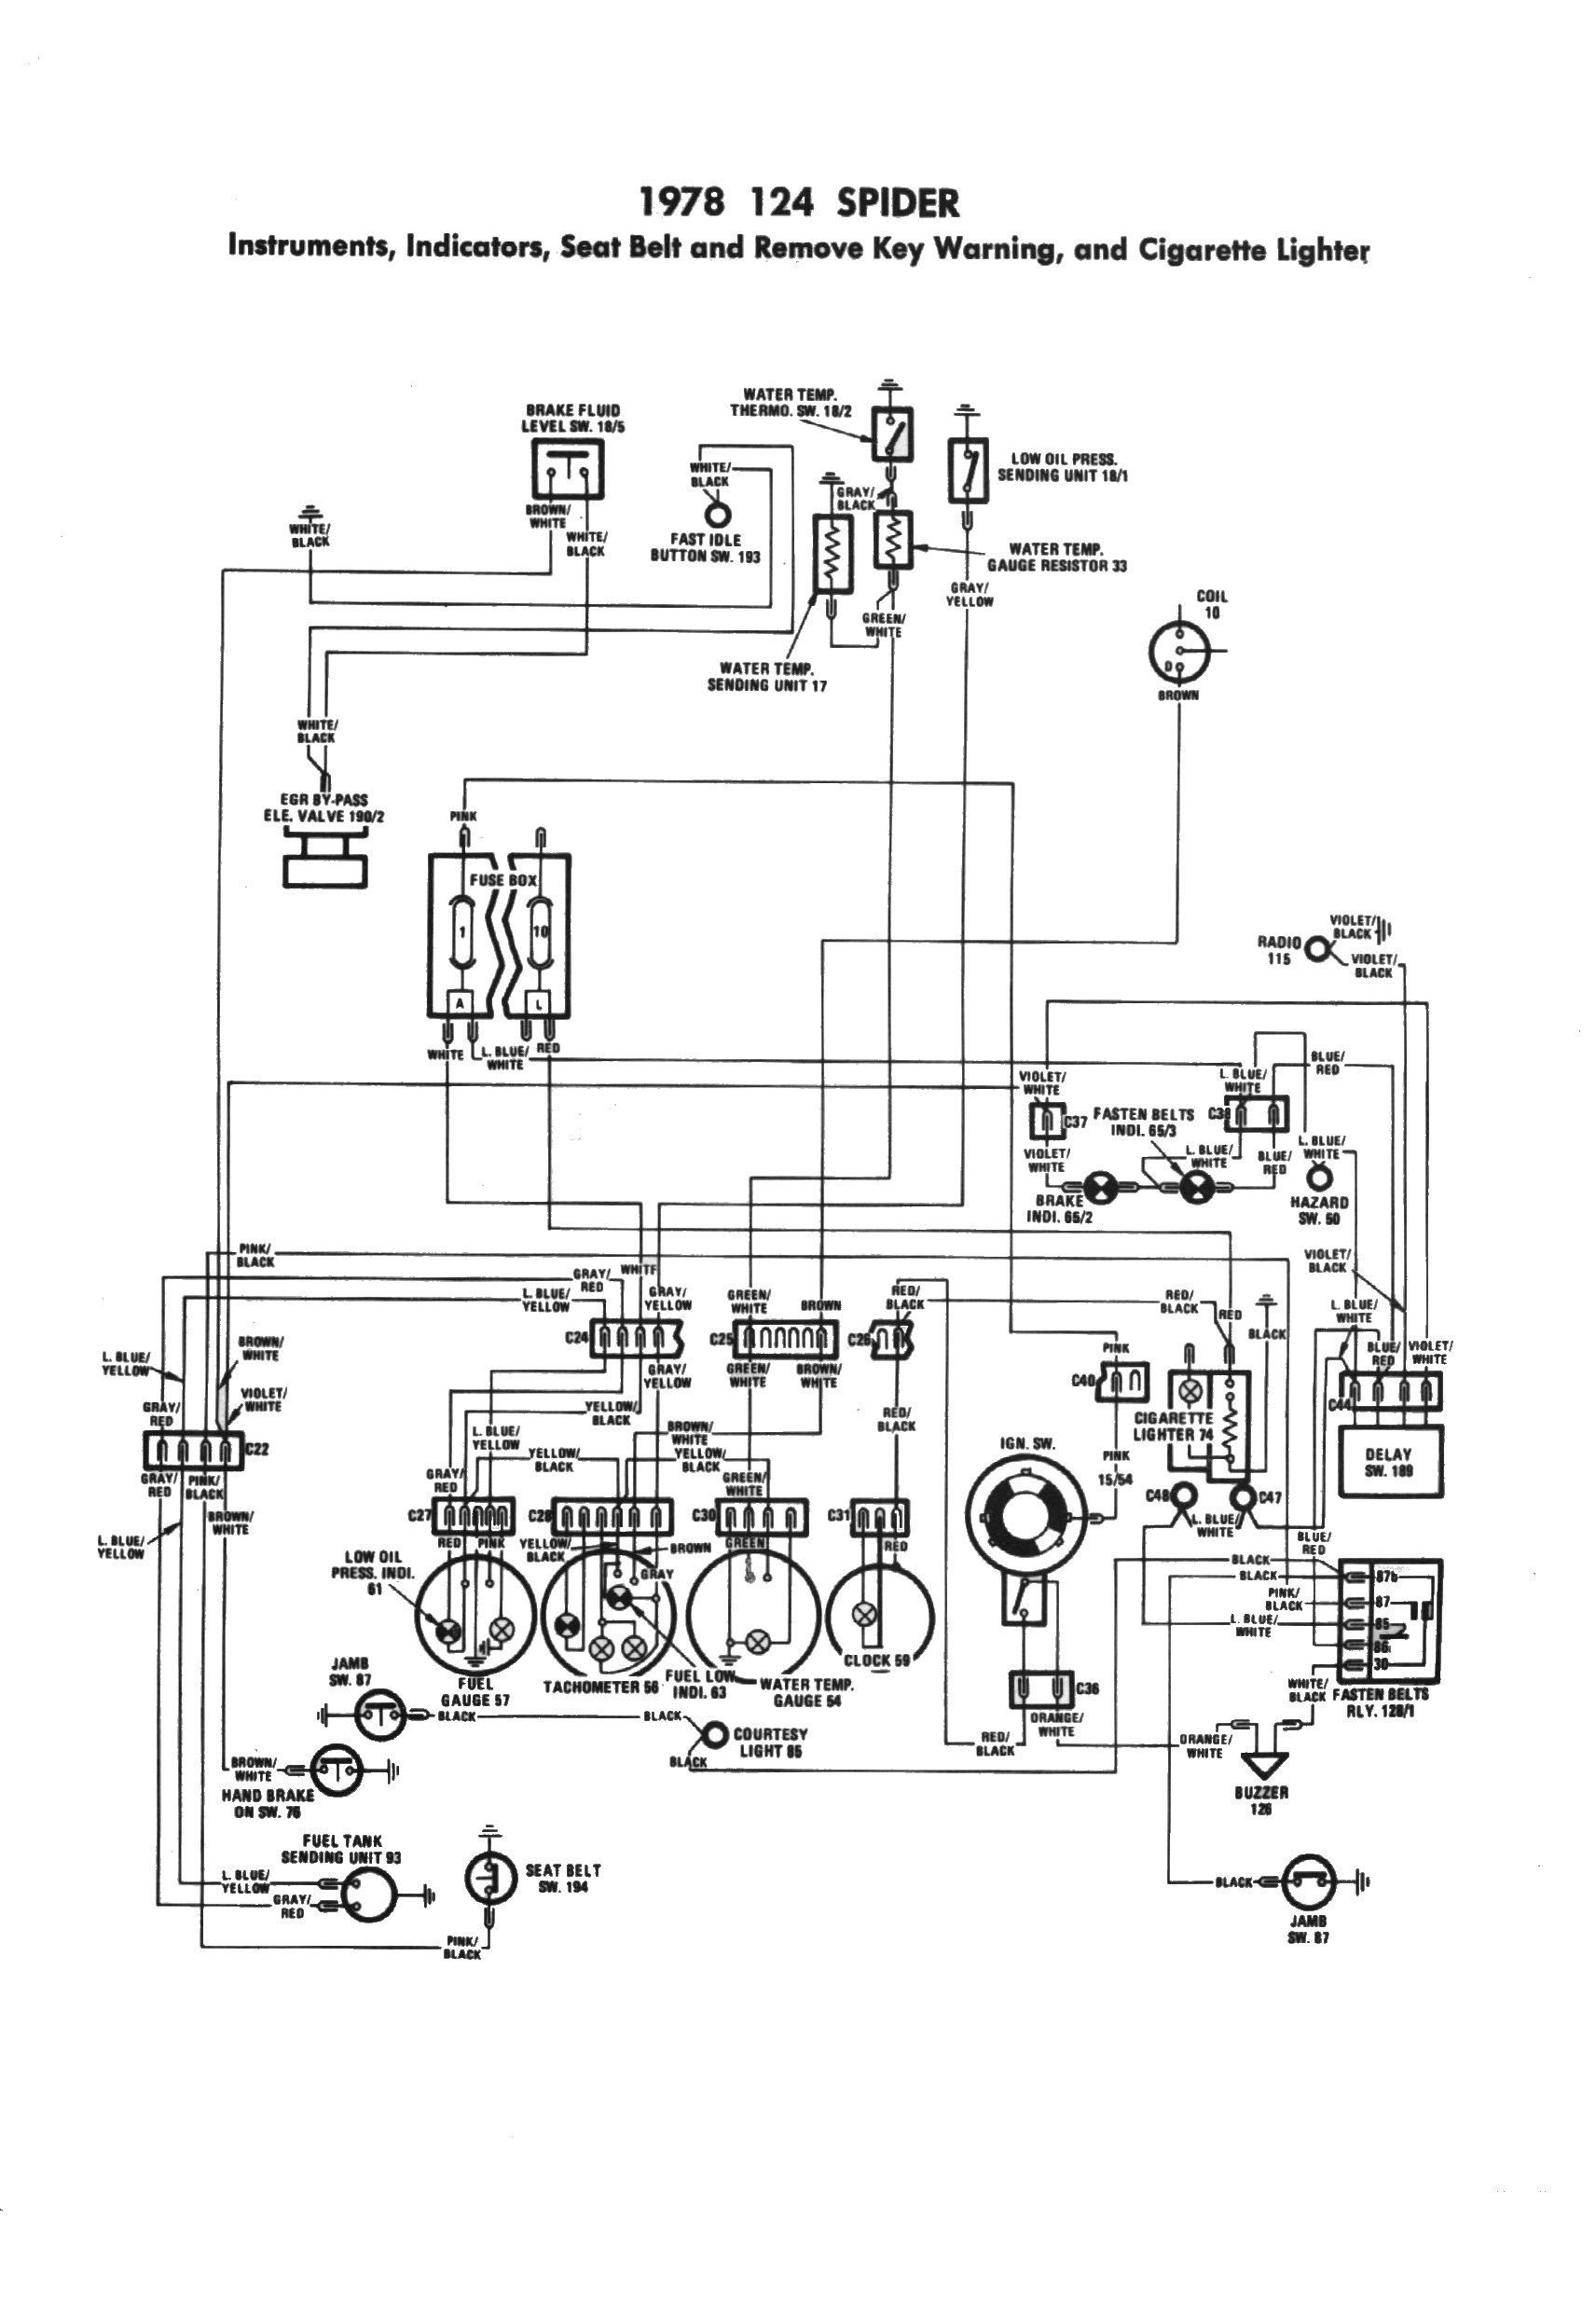 New Wiring Diagram Ac Mobil Diagramsample Diagramformats Wiring Diagram